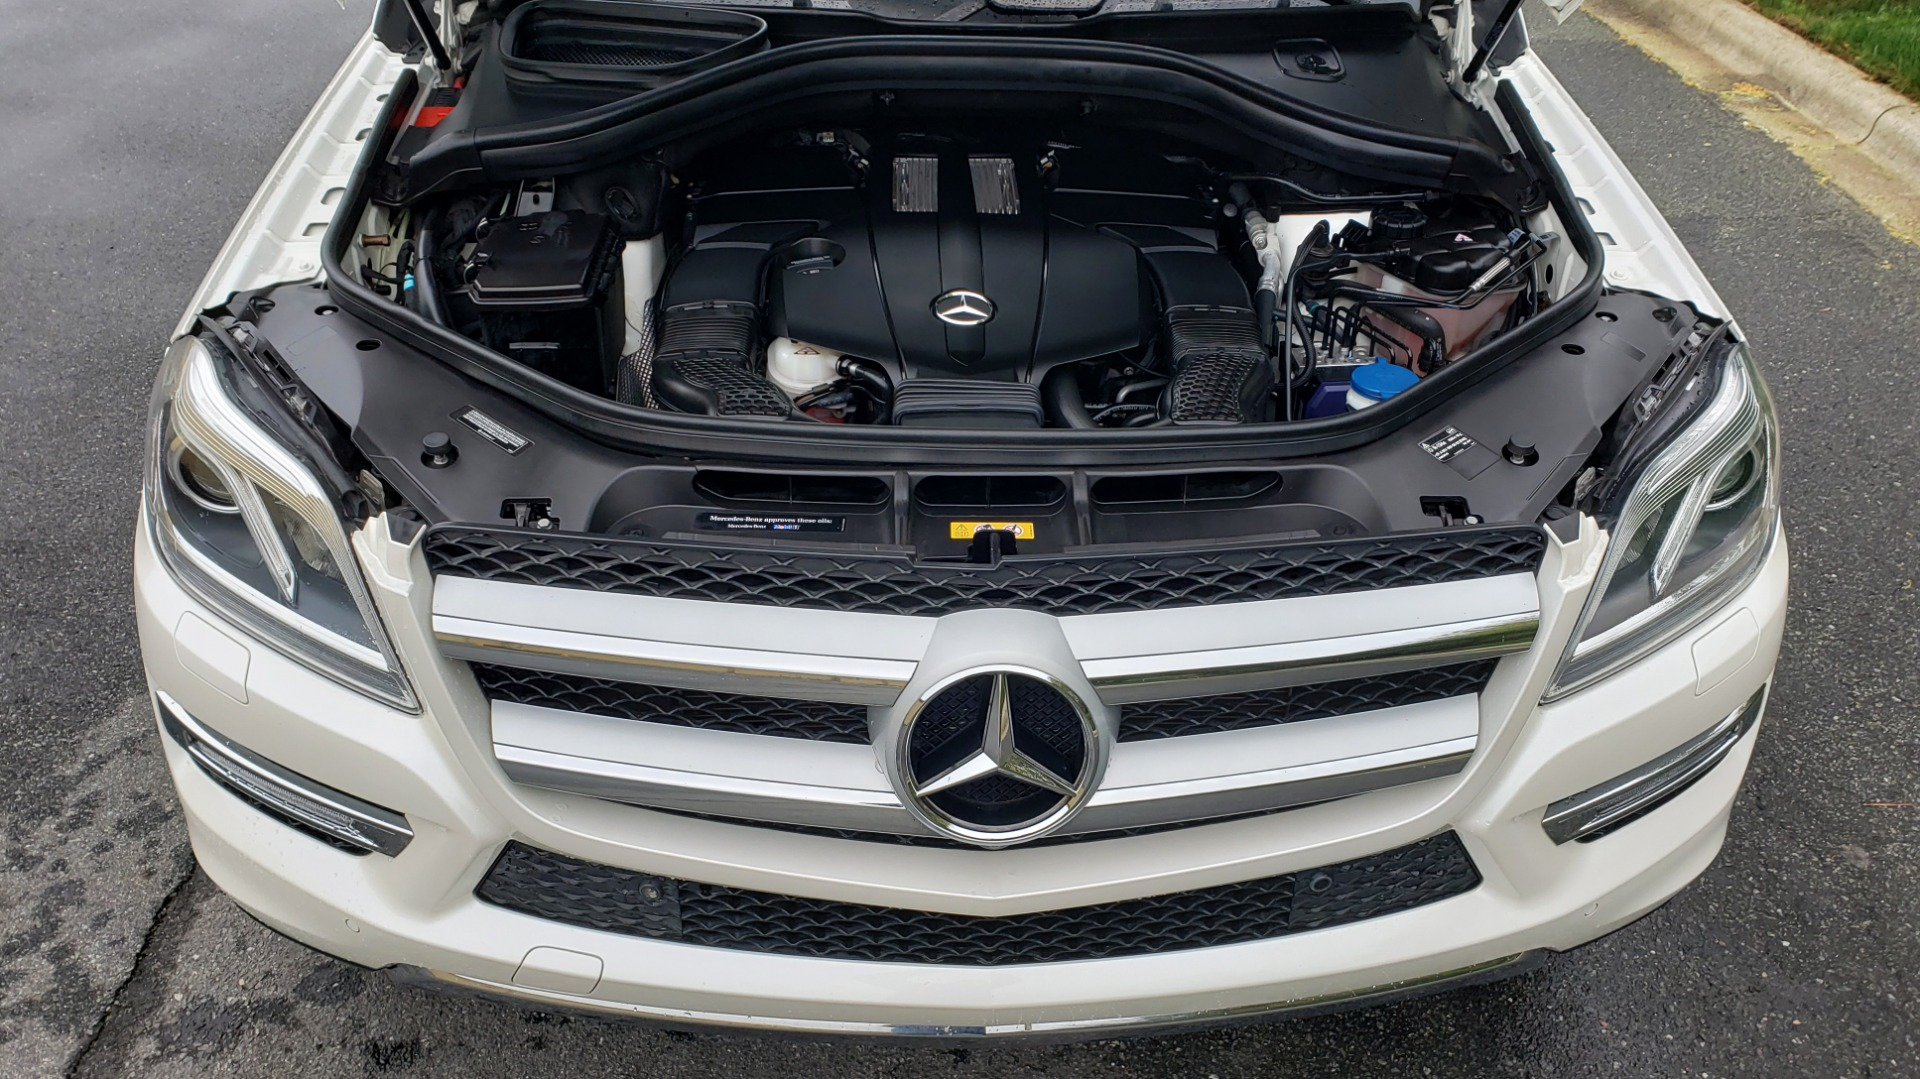 Used 2015 Mercedes-Benz GL-Class GL 450 4MATIC PREMIUM / NAV / PANO-ROOF / LANE TRACK / PARK ASST for sale Sold at Formula Imports in Charlotte NC 28227 10